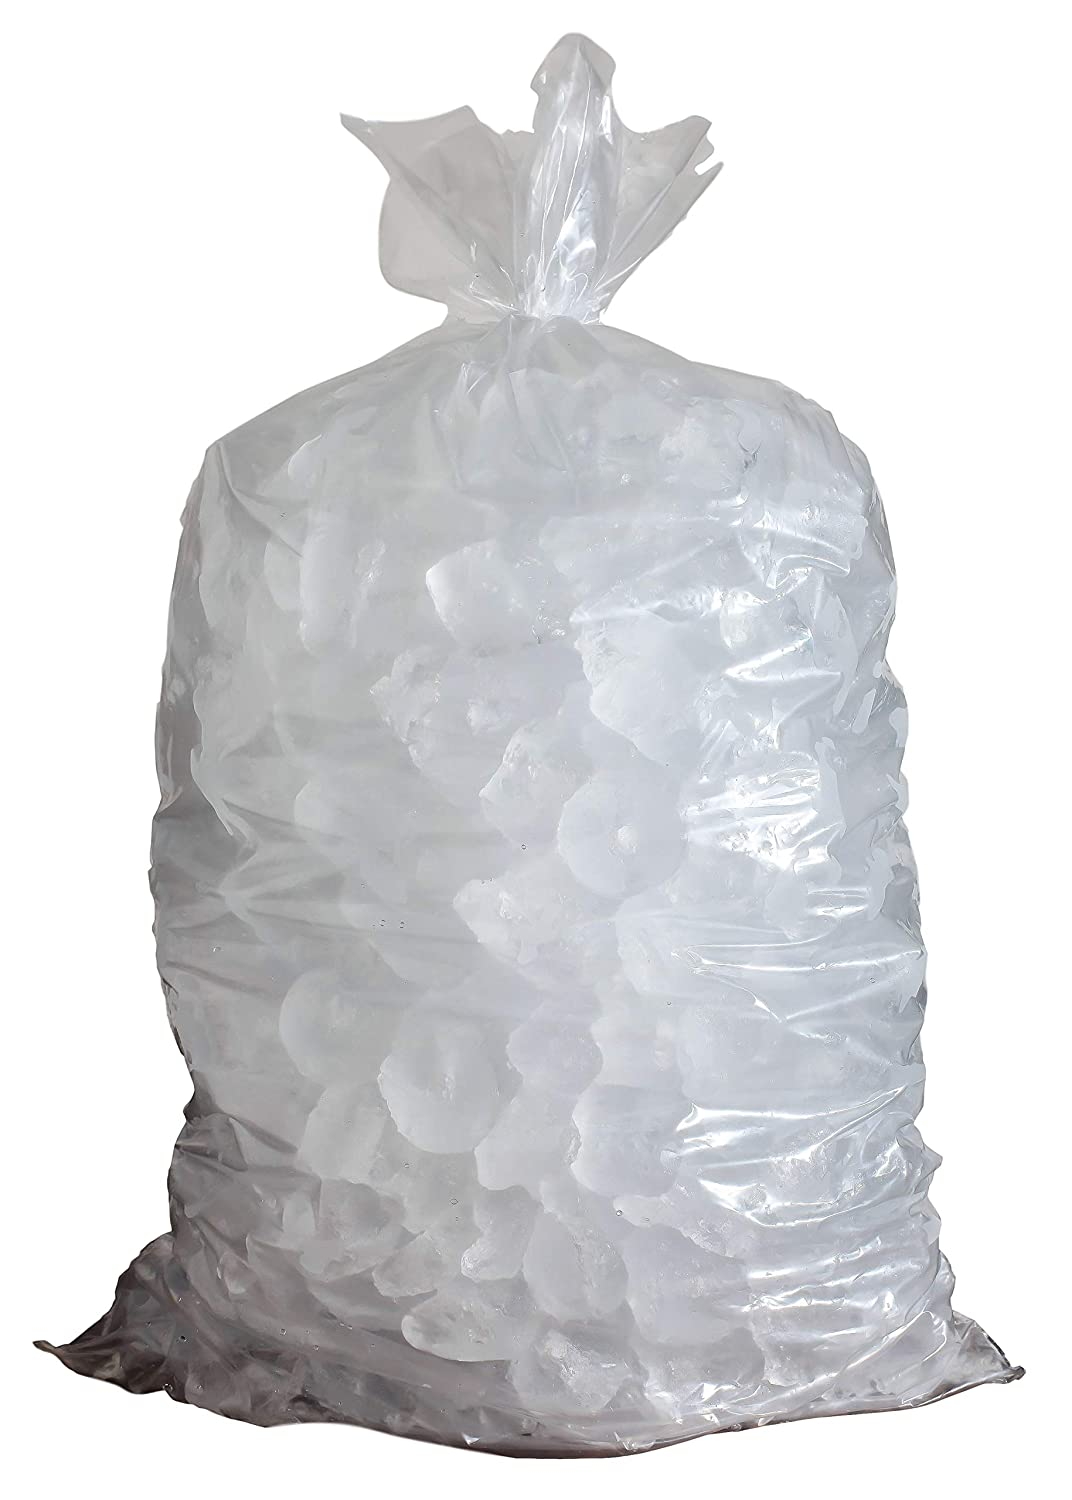 Aluf Plastics 0.6 MIL Clear Poly 5 LB Ice Buckets Liners Poly Food Bags - 8